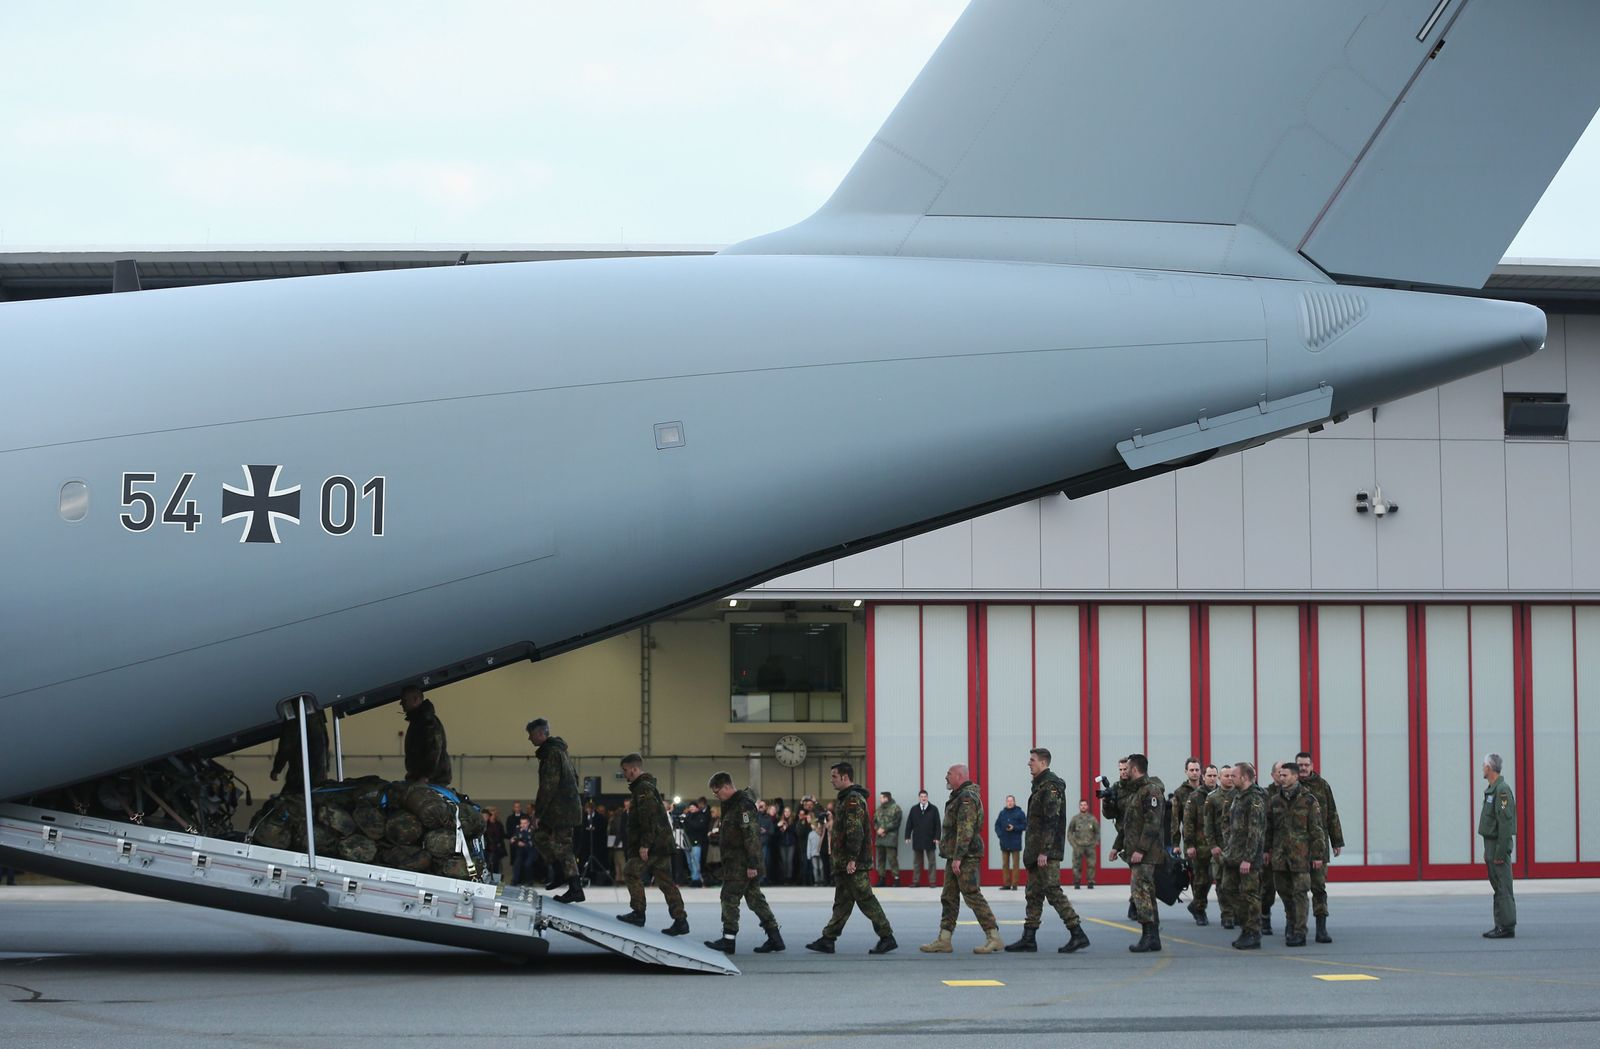 members of the Bundeswehr, the German armed forces, board a Luftwaffe A-400M 88495391